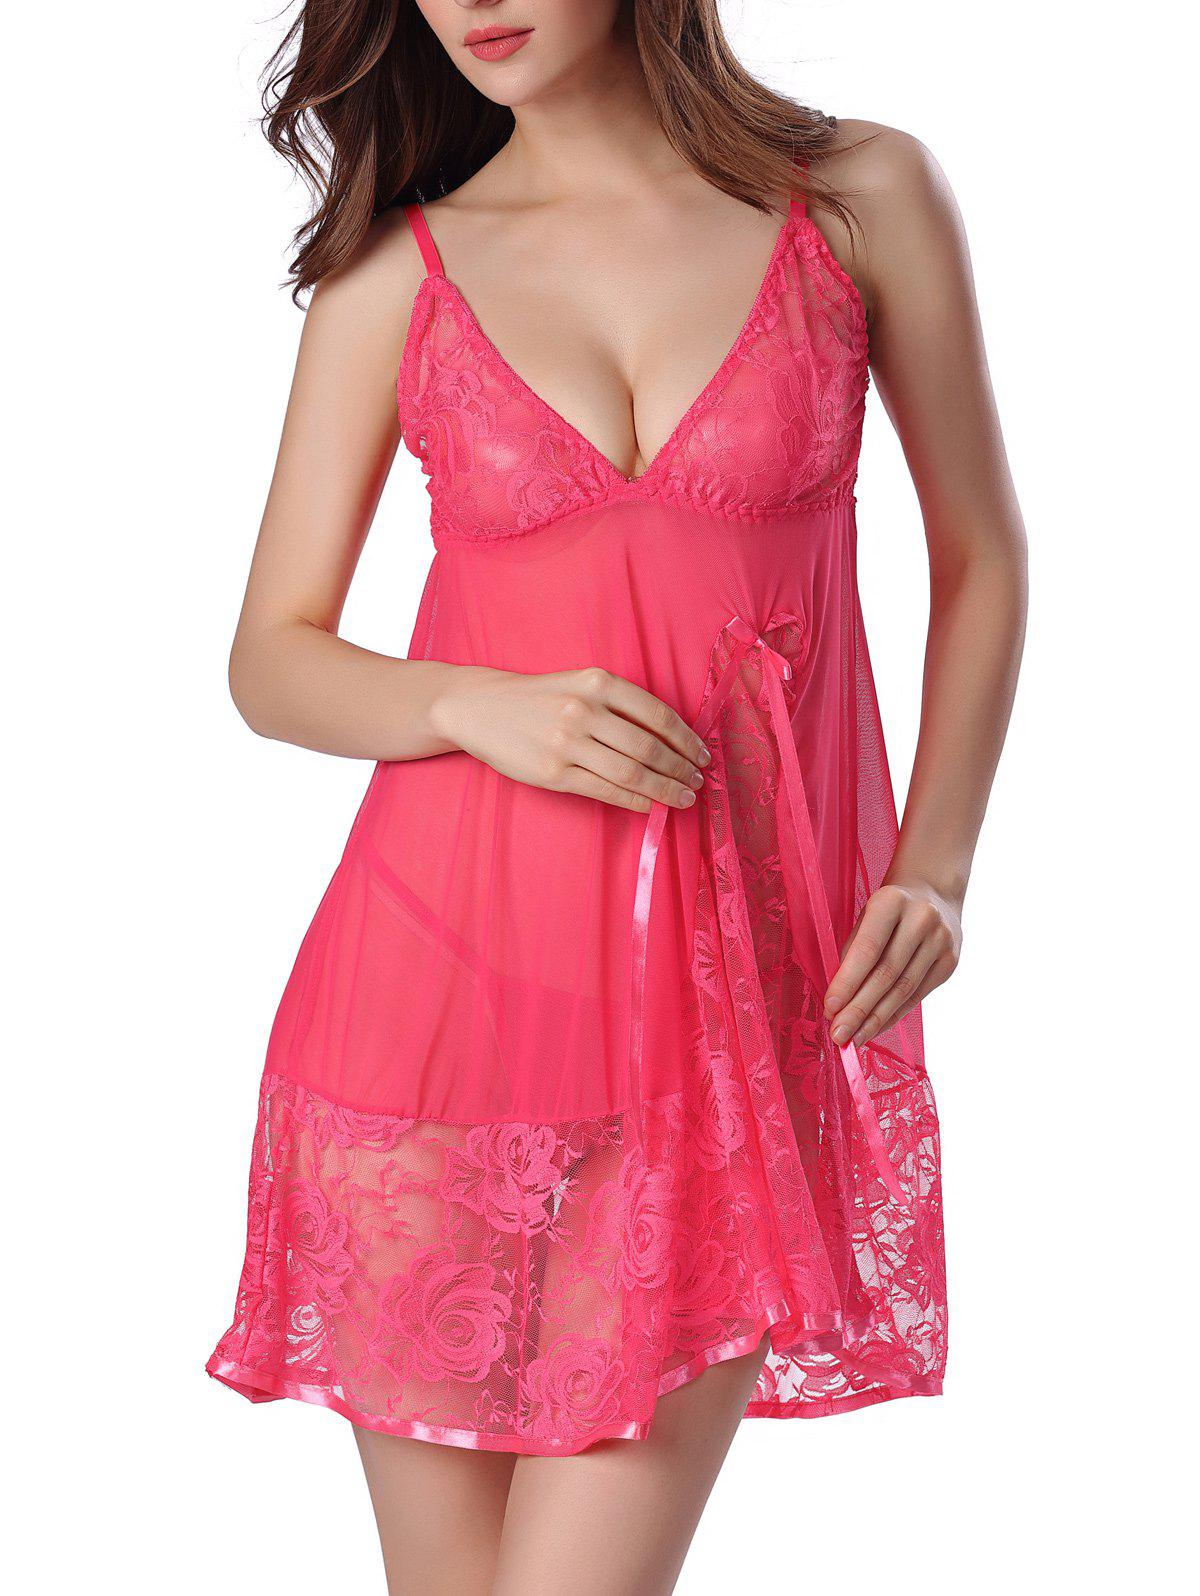 Sheer Floral Lace Panel Mesh Babydoll SleepwearWOMEN<br><br>Size: XL; Color: WATERMELON RED; Material: Nylon; Fabric Type: Voile; Pattern Type: Floral; Embellishment: Bowknot,Lace,Spliced; Weight: 0.220kg; Package Contents: 1 x Babydoll  1 x T-Back;